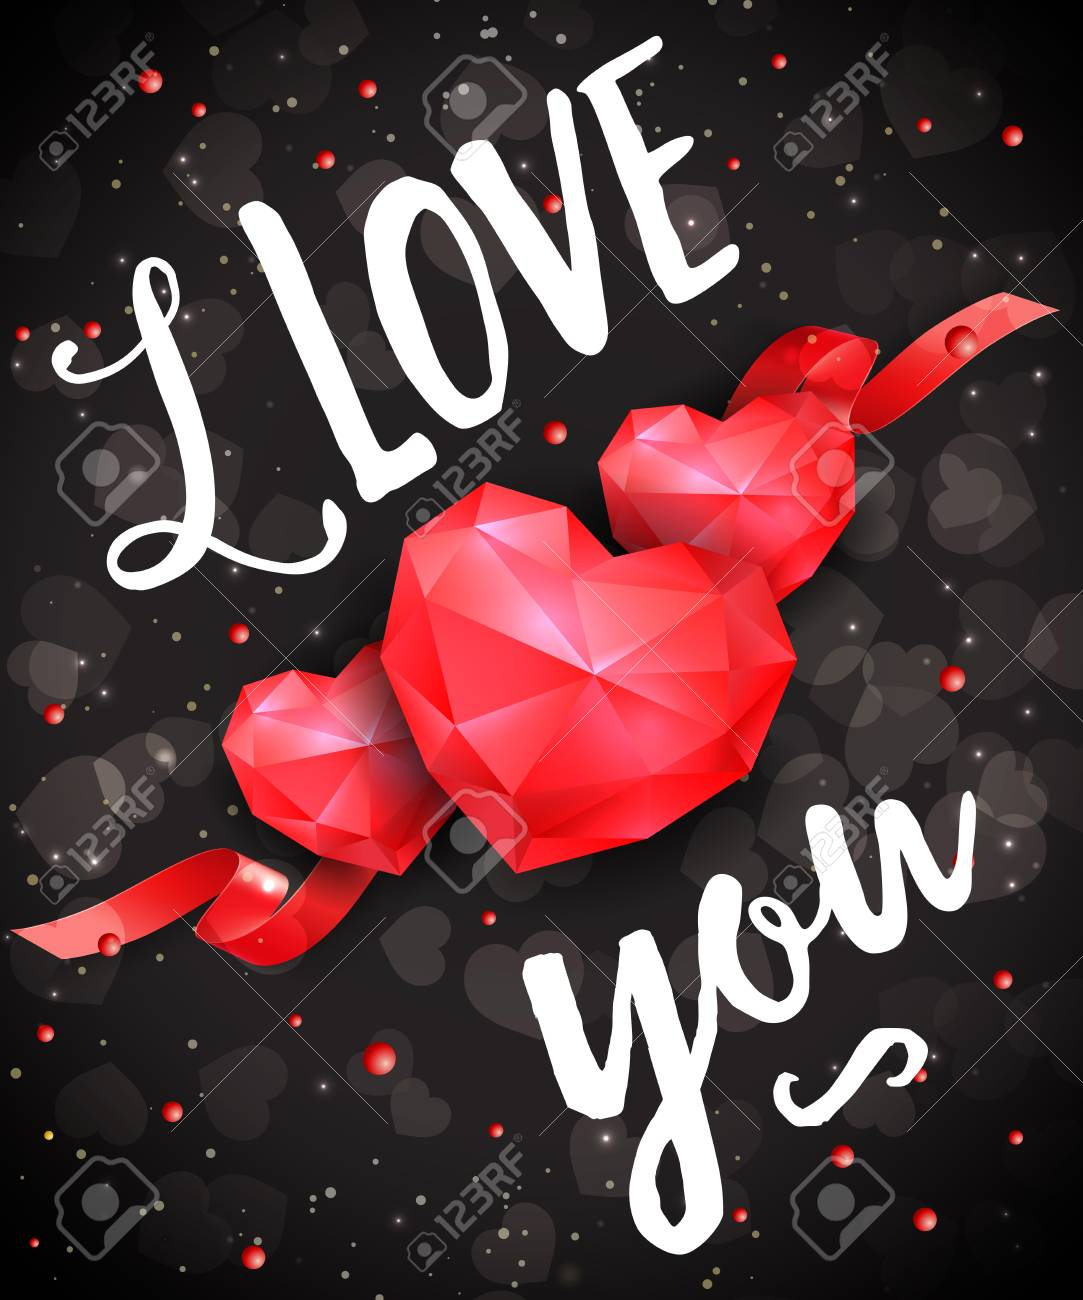 I Love You Lettering With Ruby Hearts On Black Background